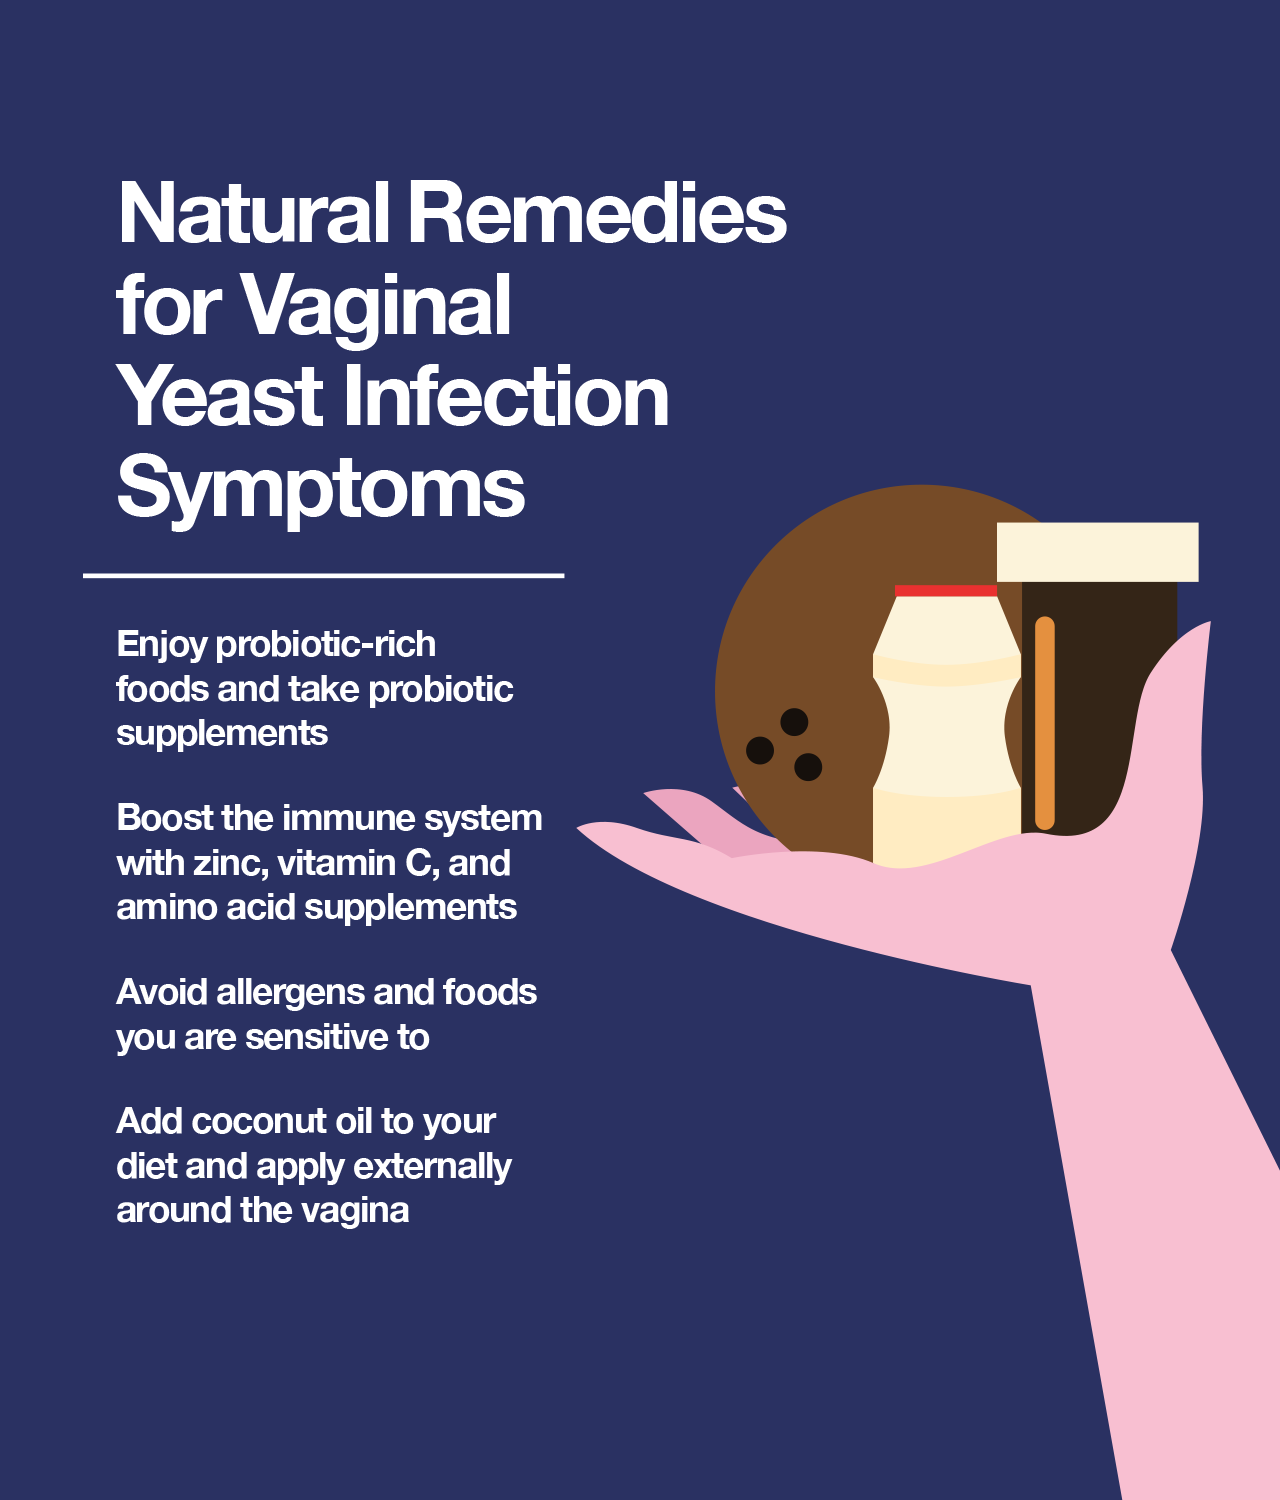 Natural Remedies for Vaginal Yeast Infections